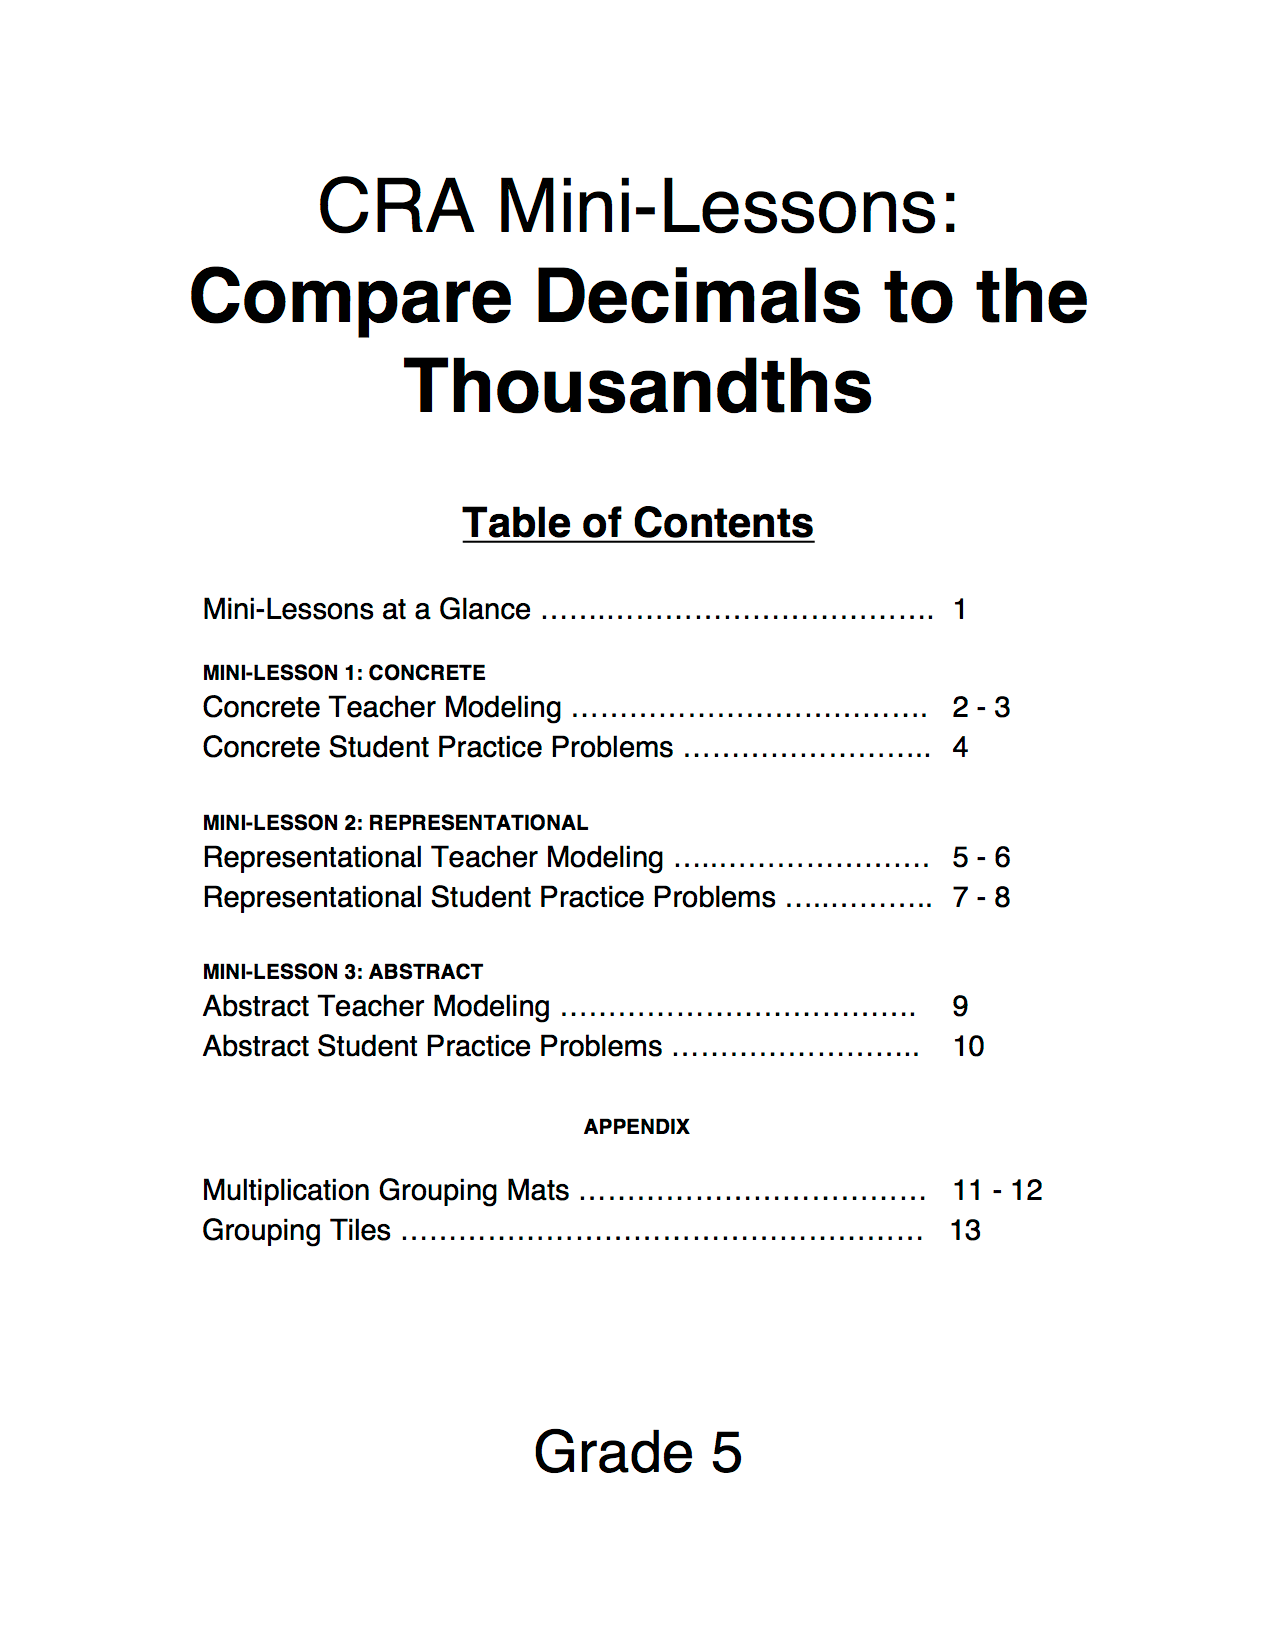 5 Nbt 3 Decimals To The Thousandths